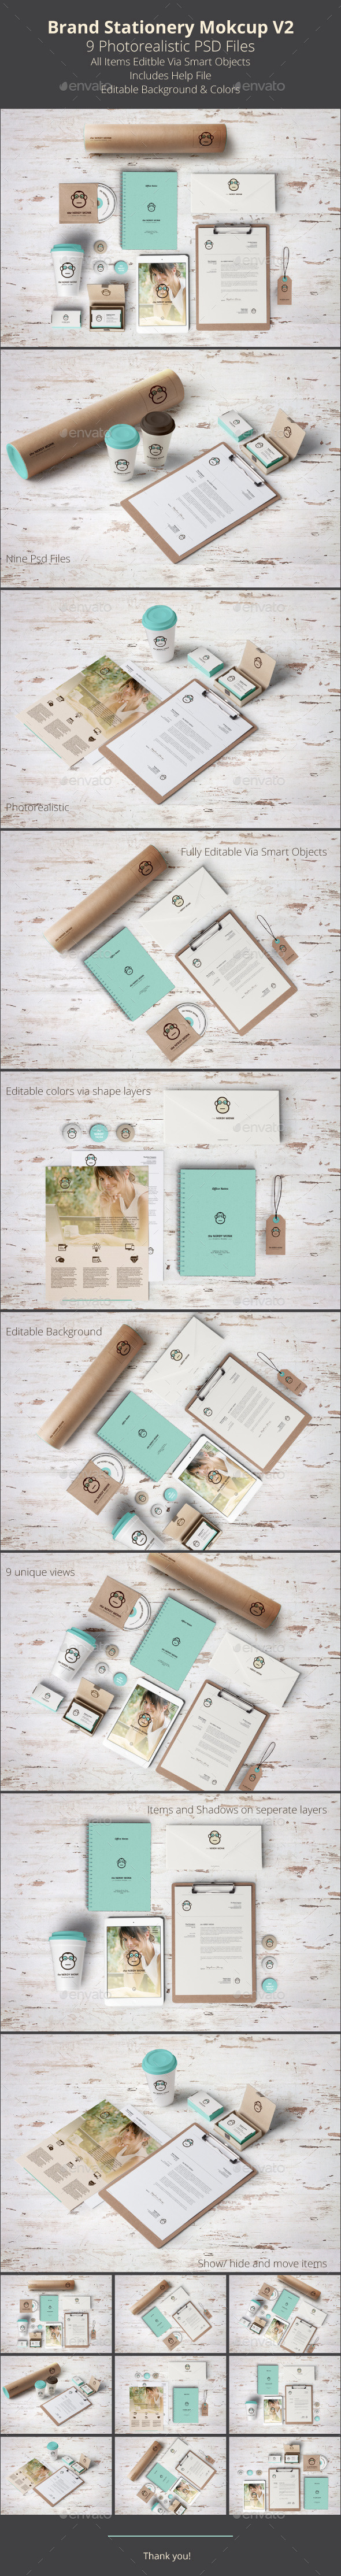 GraphicRiver Brand Stationery Mockup V2 9324818